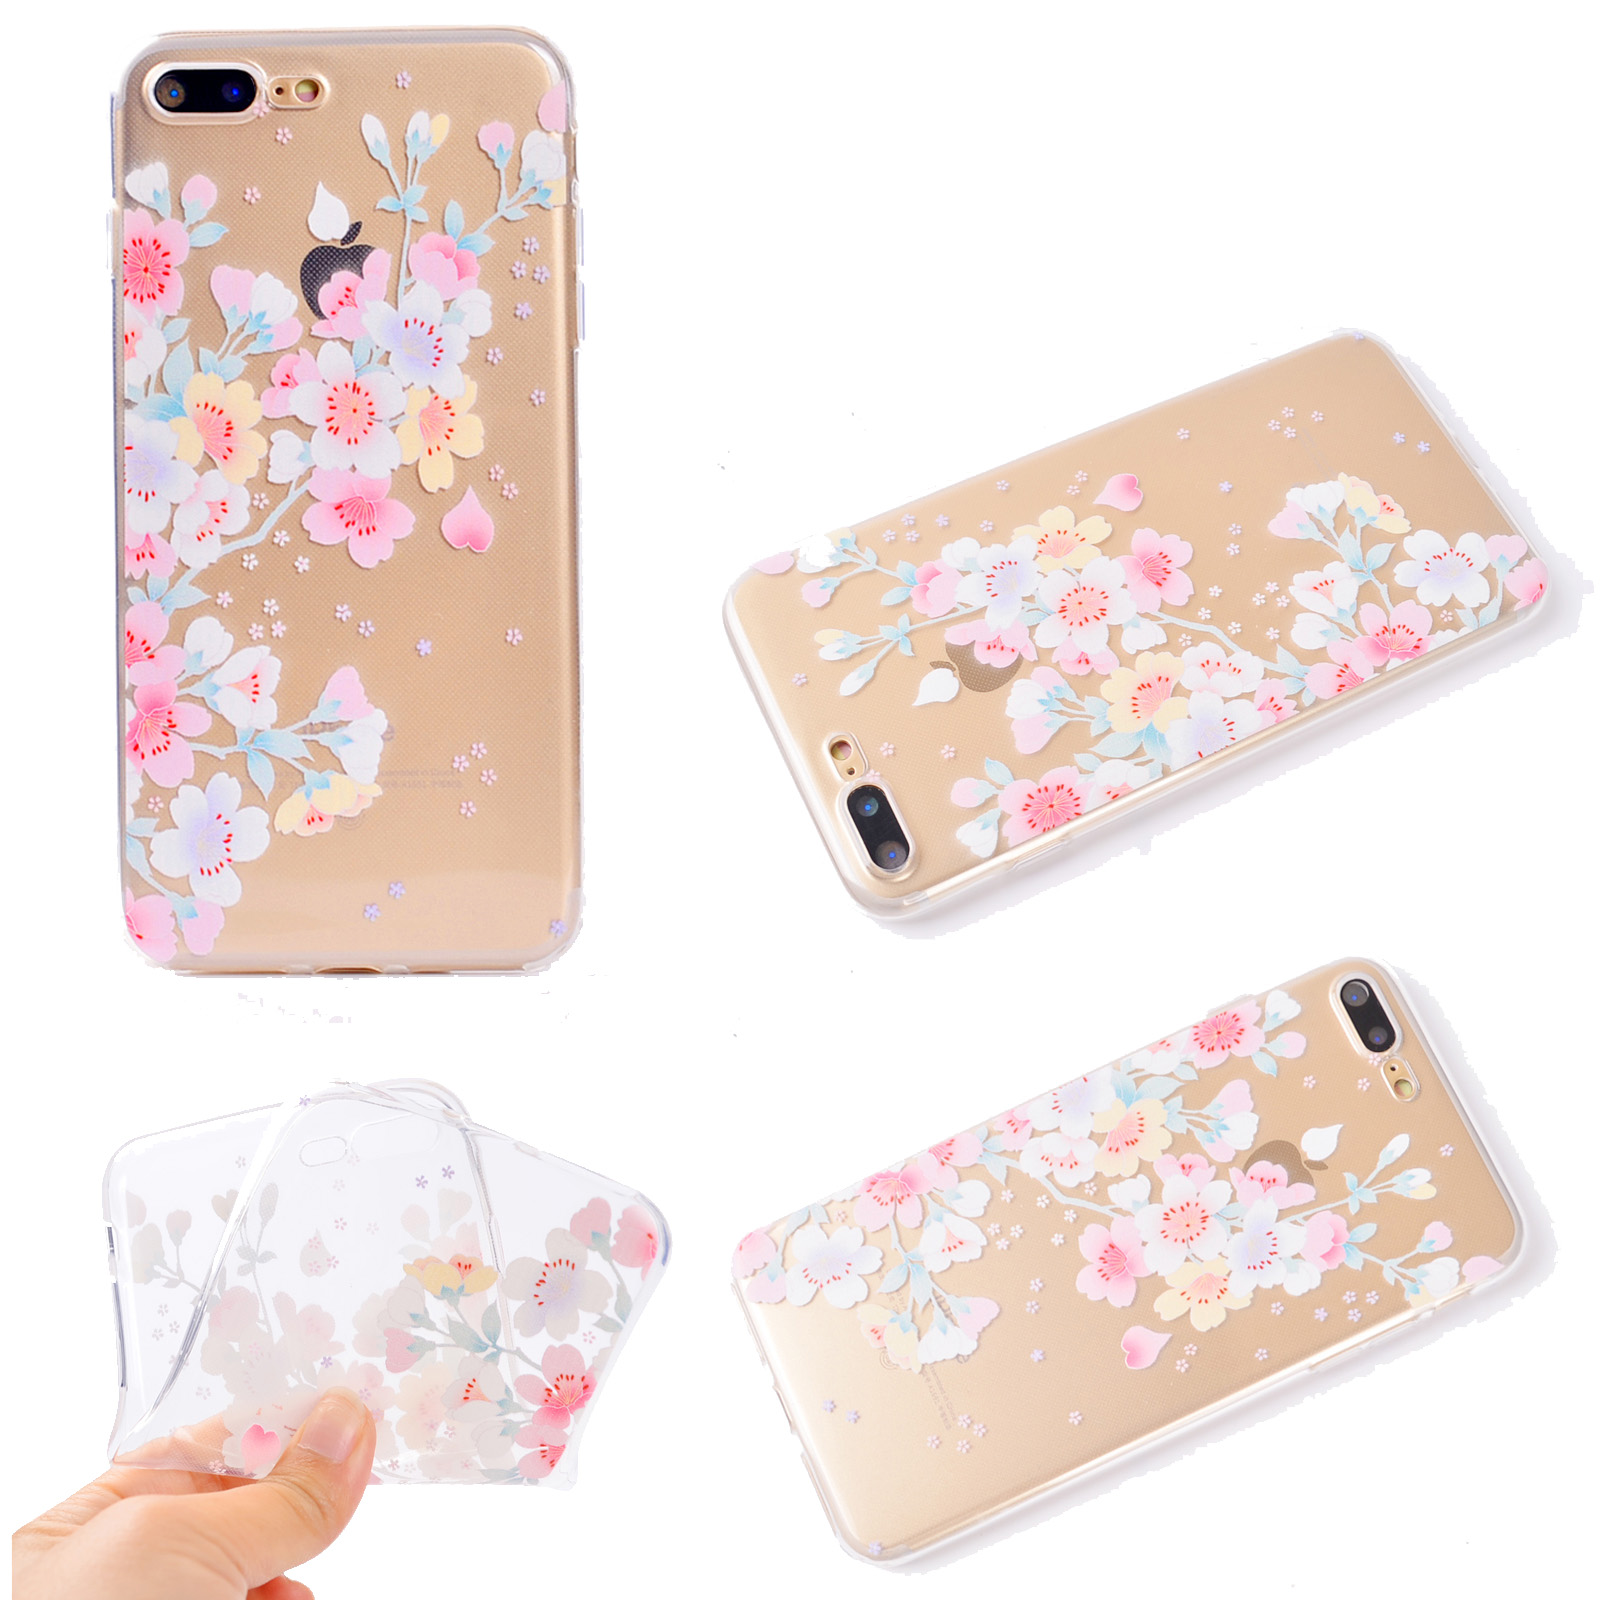 Squishy Case For Iphone 5s : Cute Painted Clear Slim Soft TPU Protective Case Cover For iPhone 5S 6S 7 Plus eBay